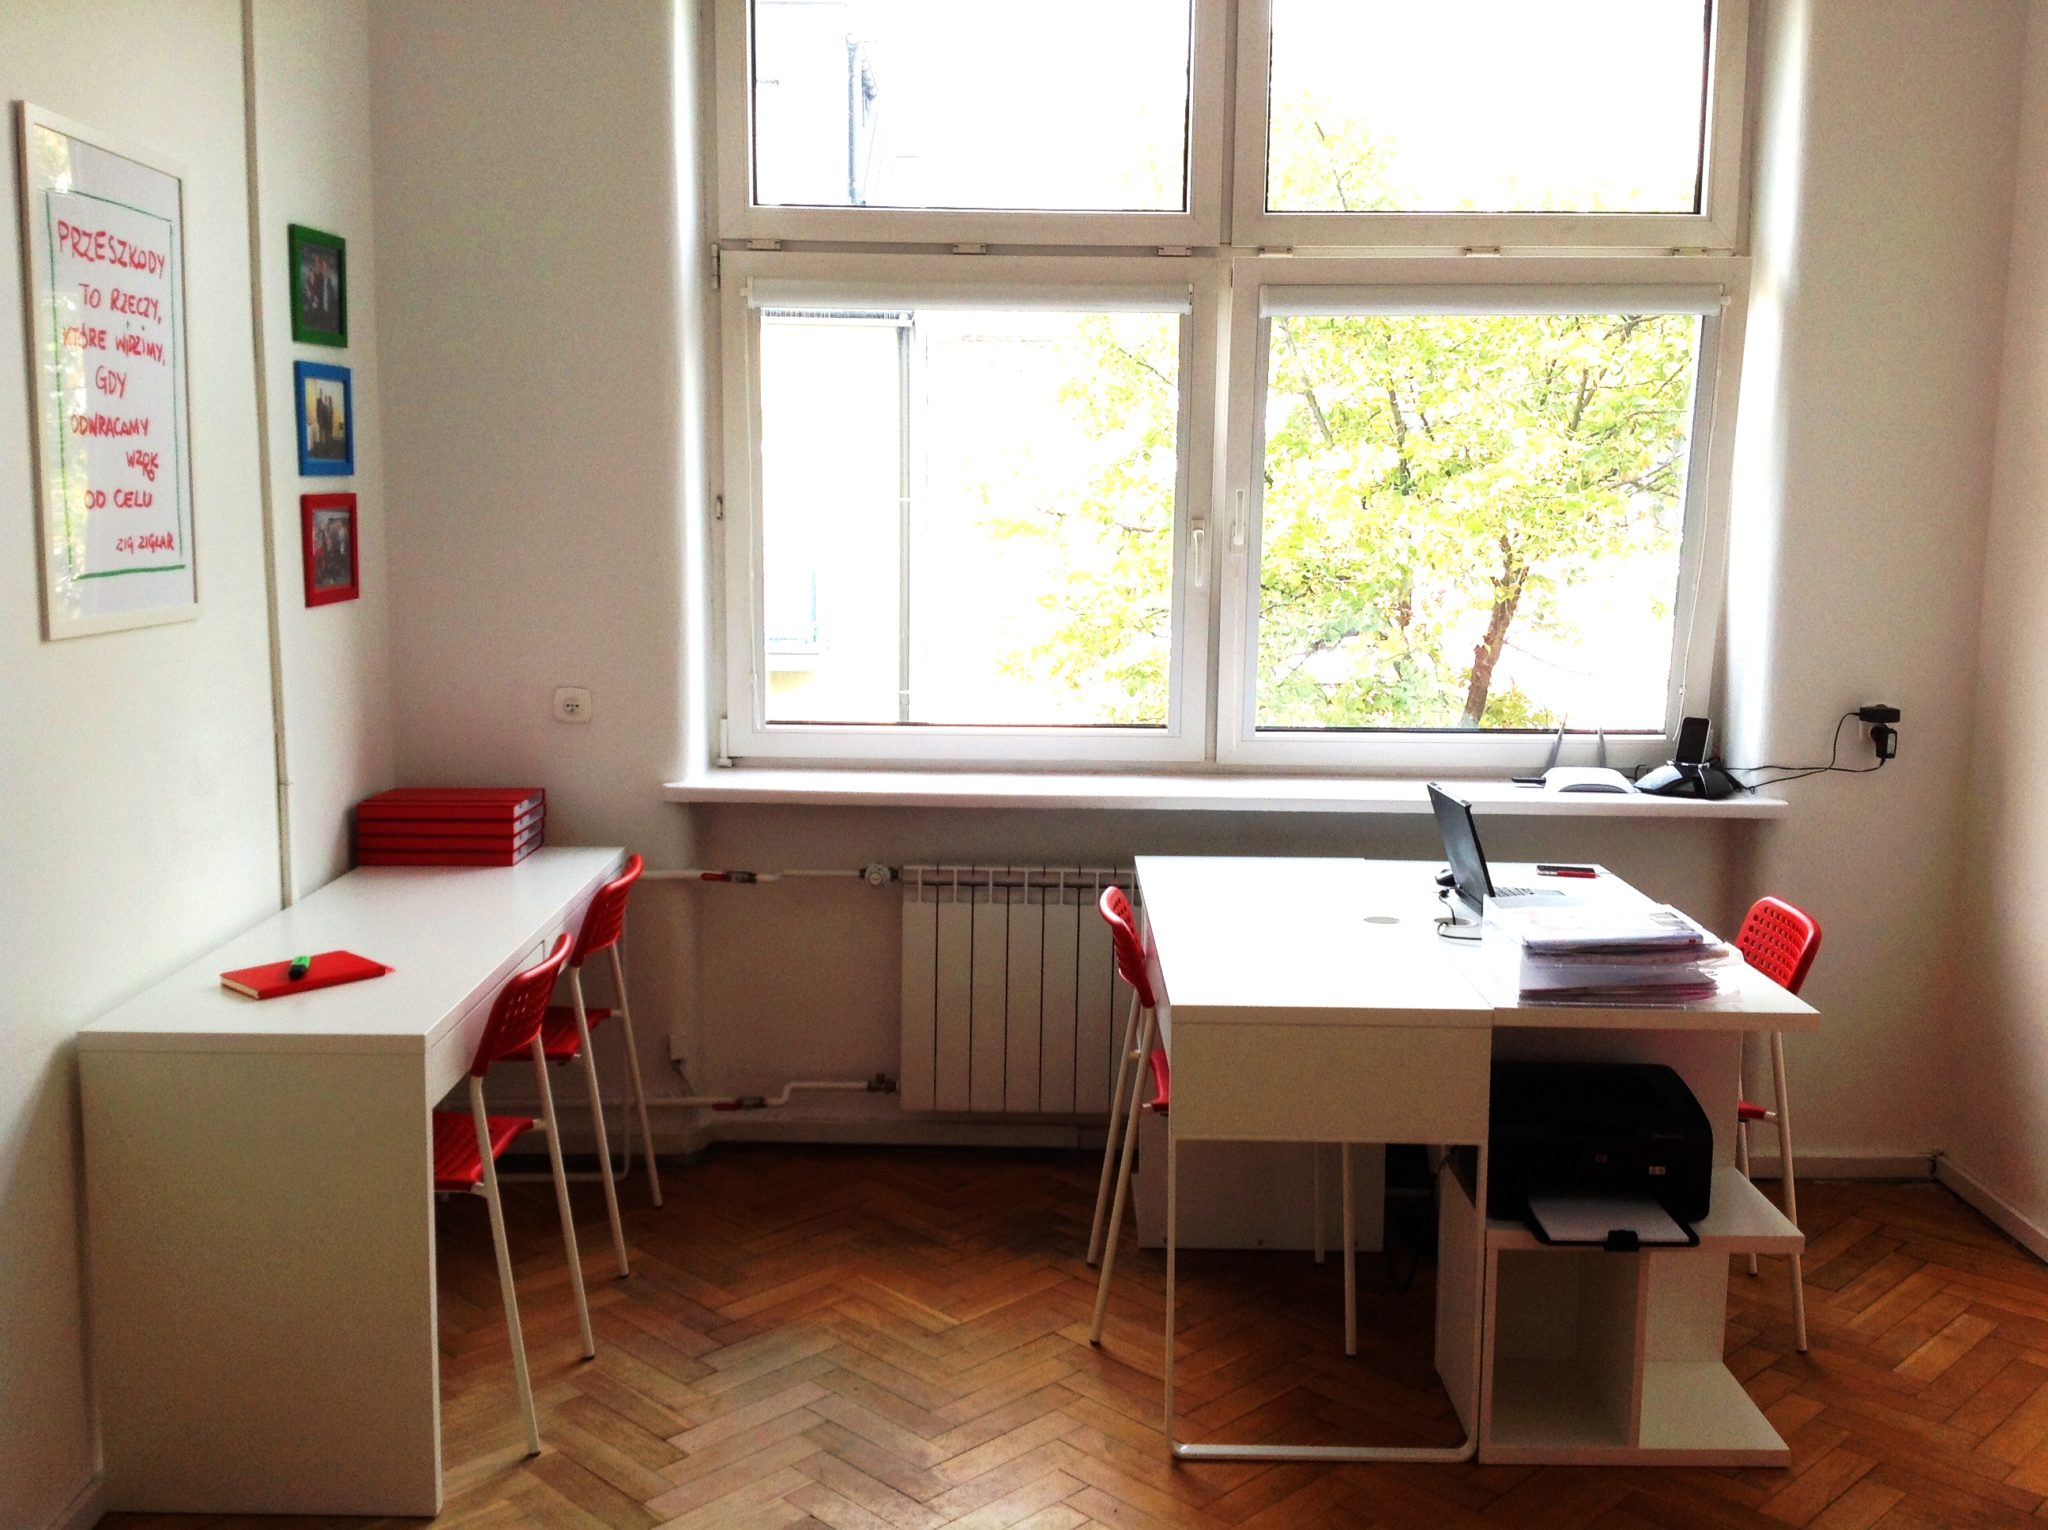 10 projekt wnetrza male kolorowe biuro interior design small colorful office google style forelementspl